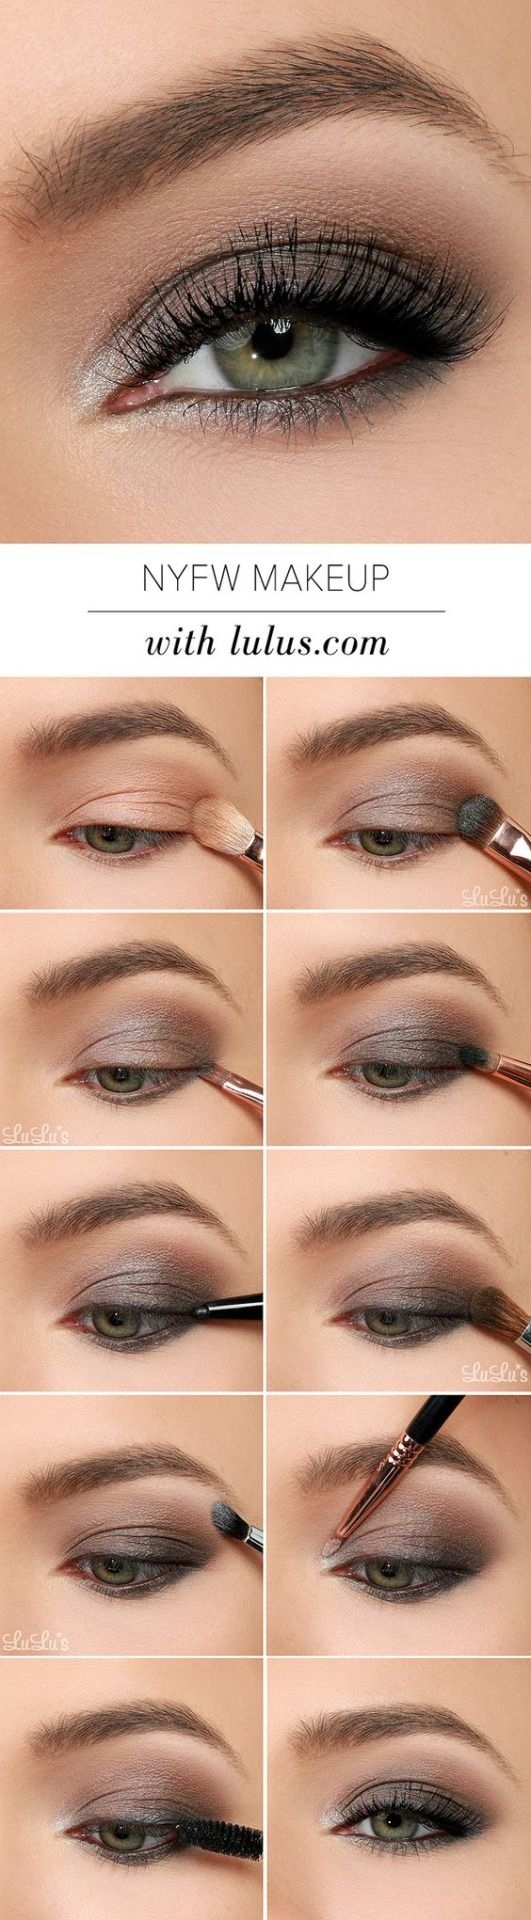 Pin By Juanes Moderate On Easy Make Up Tips | Pinterest | Makeup pertaining to Makeup Tips For Gray-Green Eyes